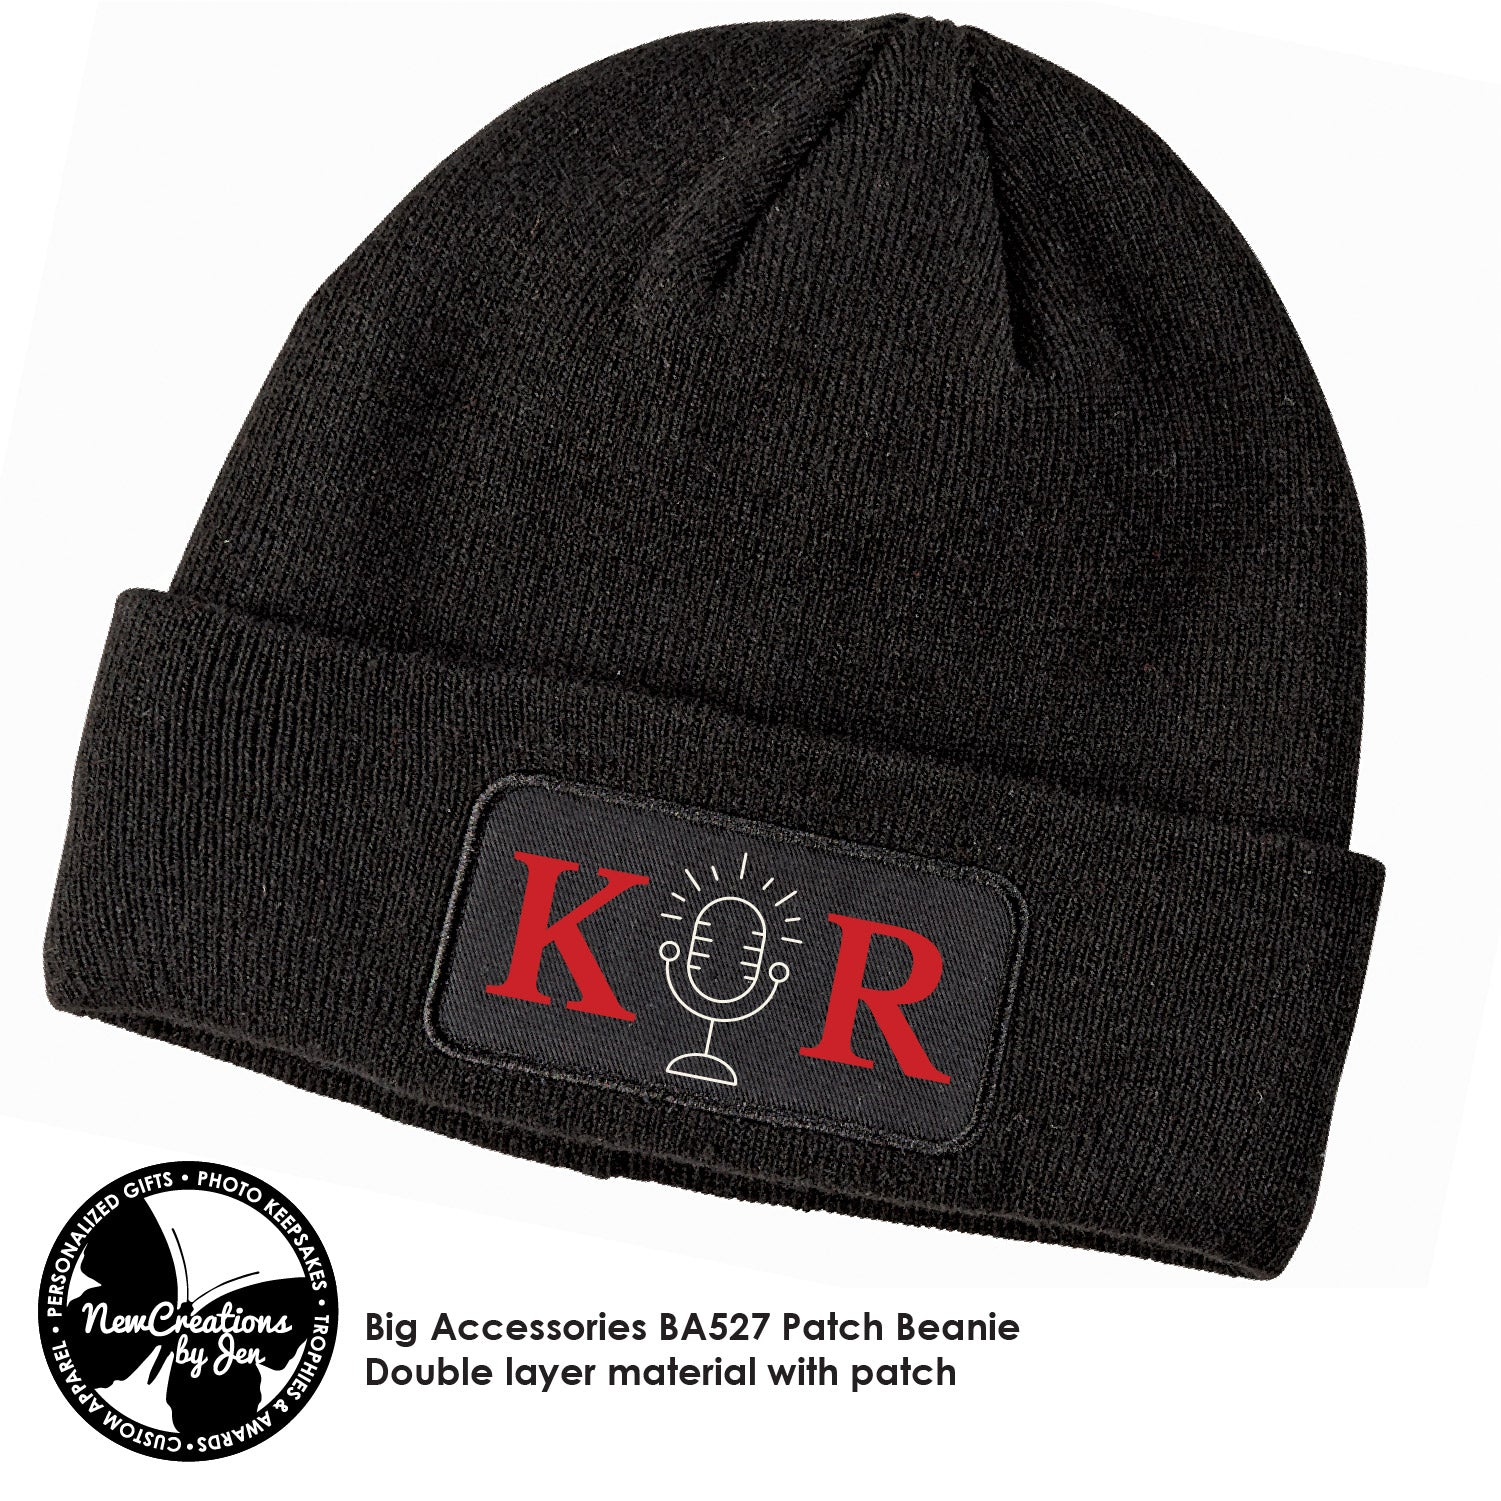 K&R Beanie Cap with patch BA527